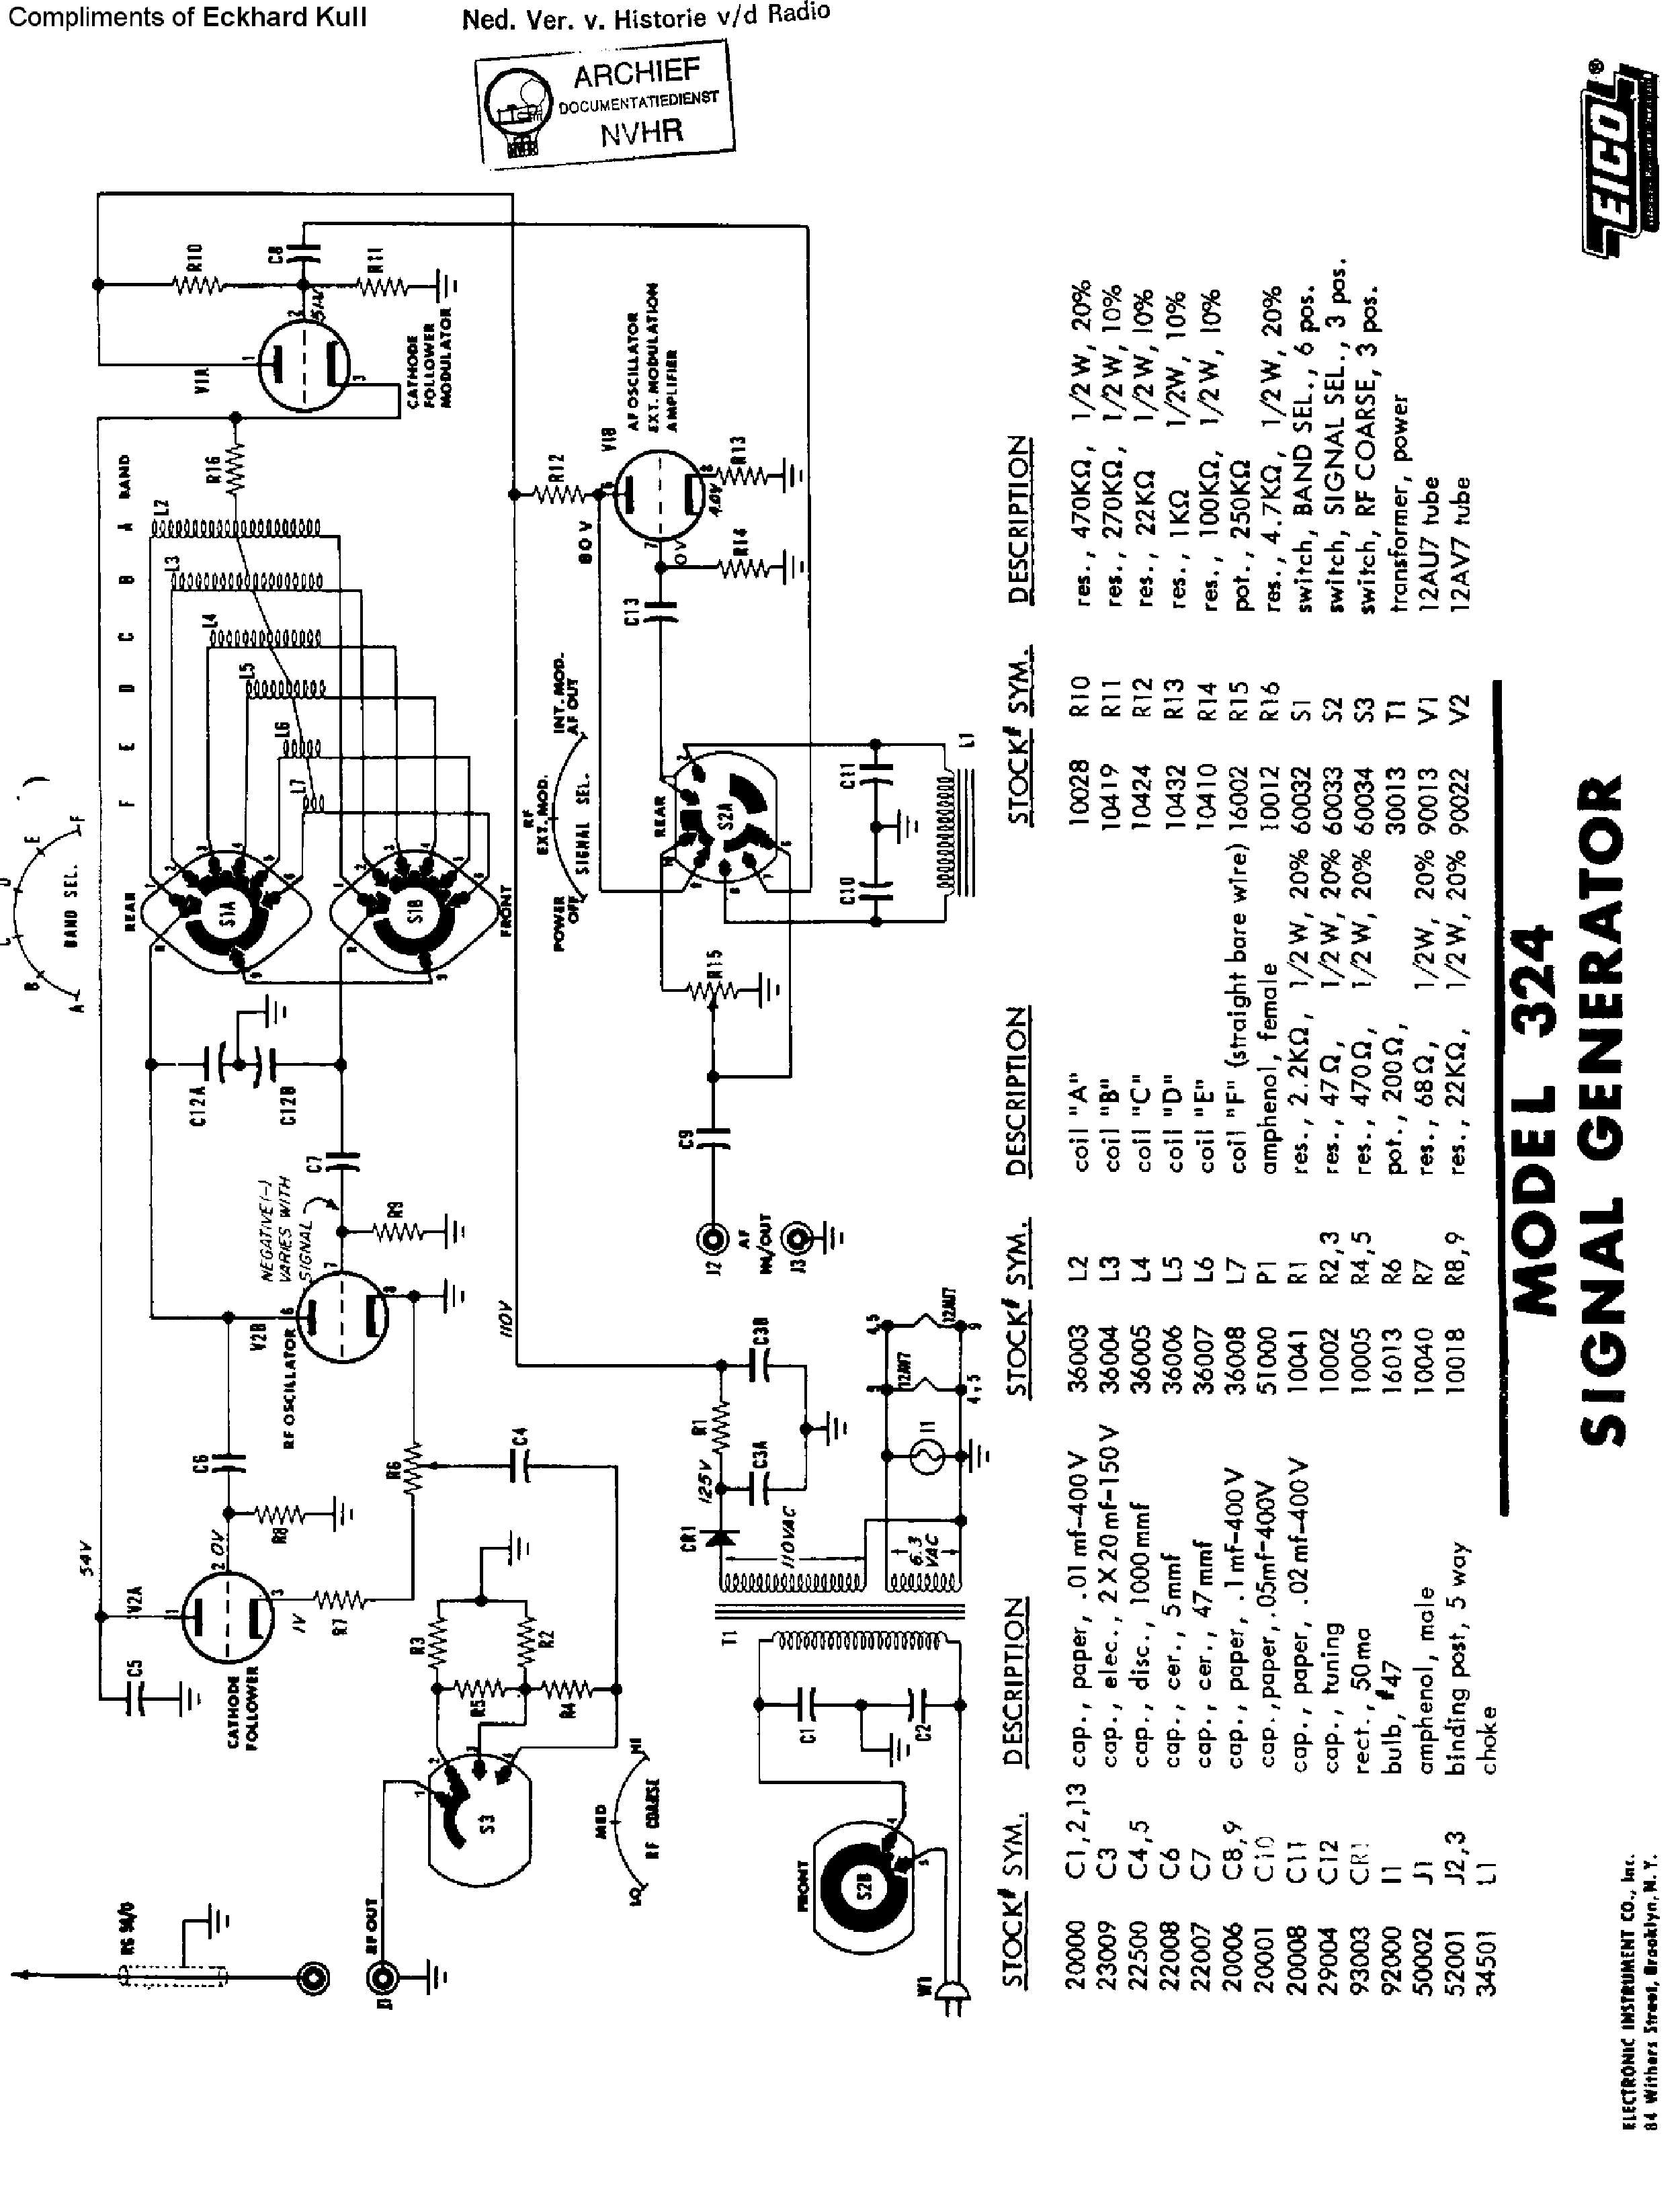 eico 377 audio generator sch service manual download